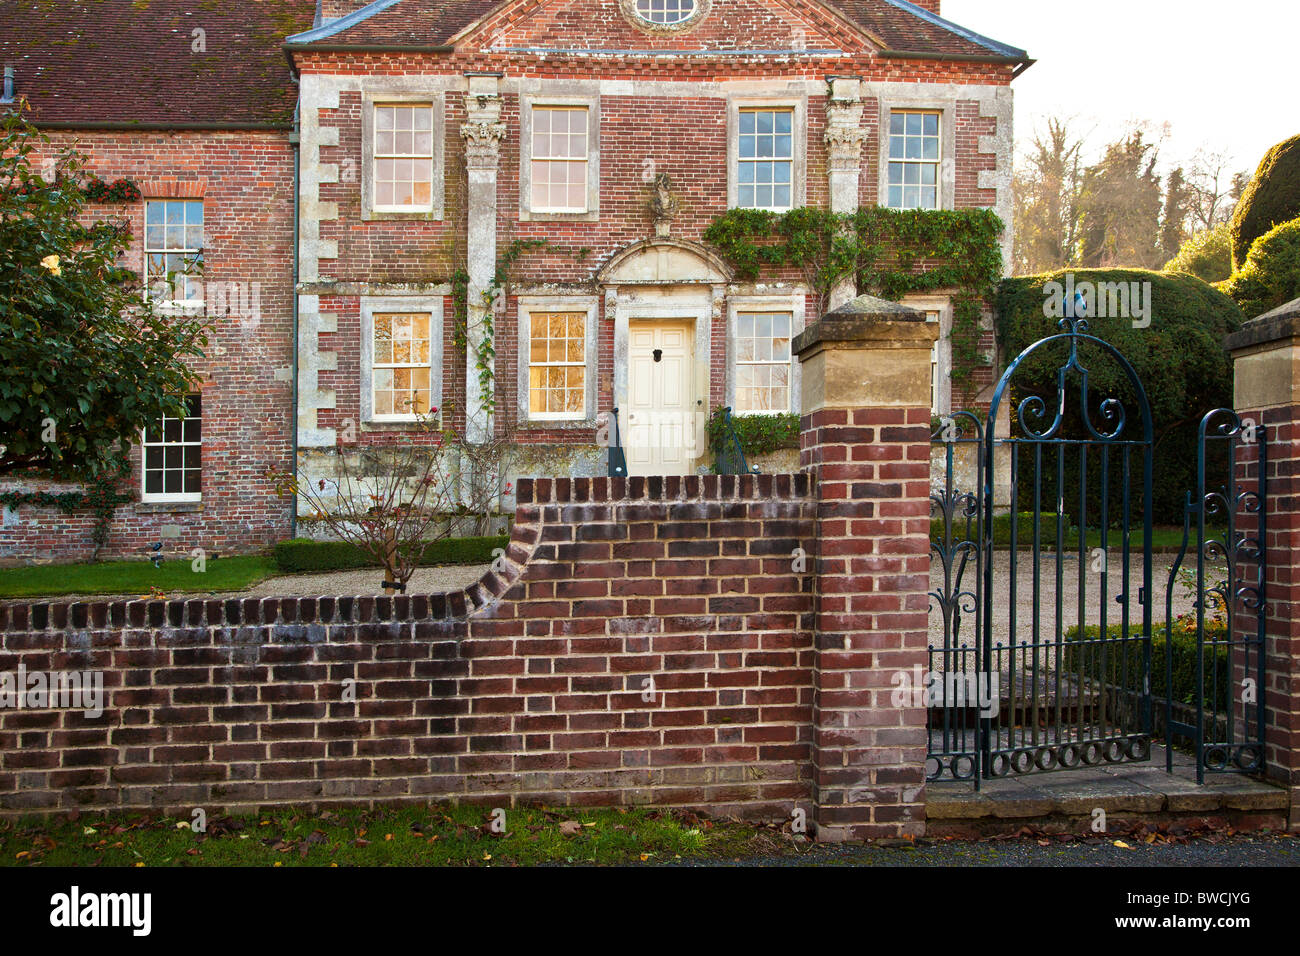 Typical English 18th century country manor house, Reddish House, in Broad Chalke, Wiltshire, England, UK - Stock Image